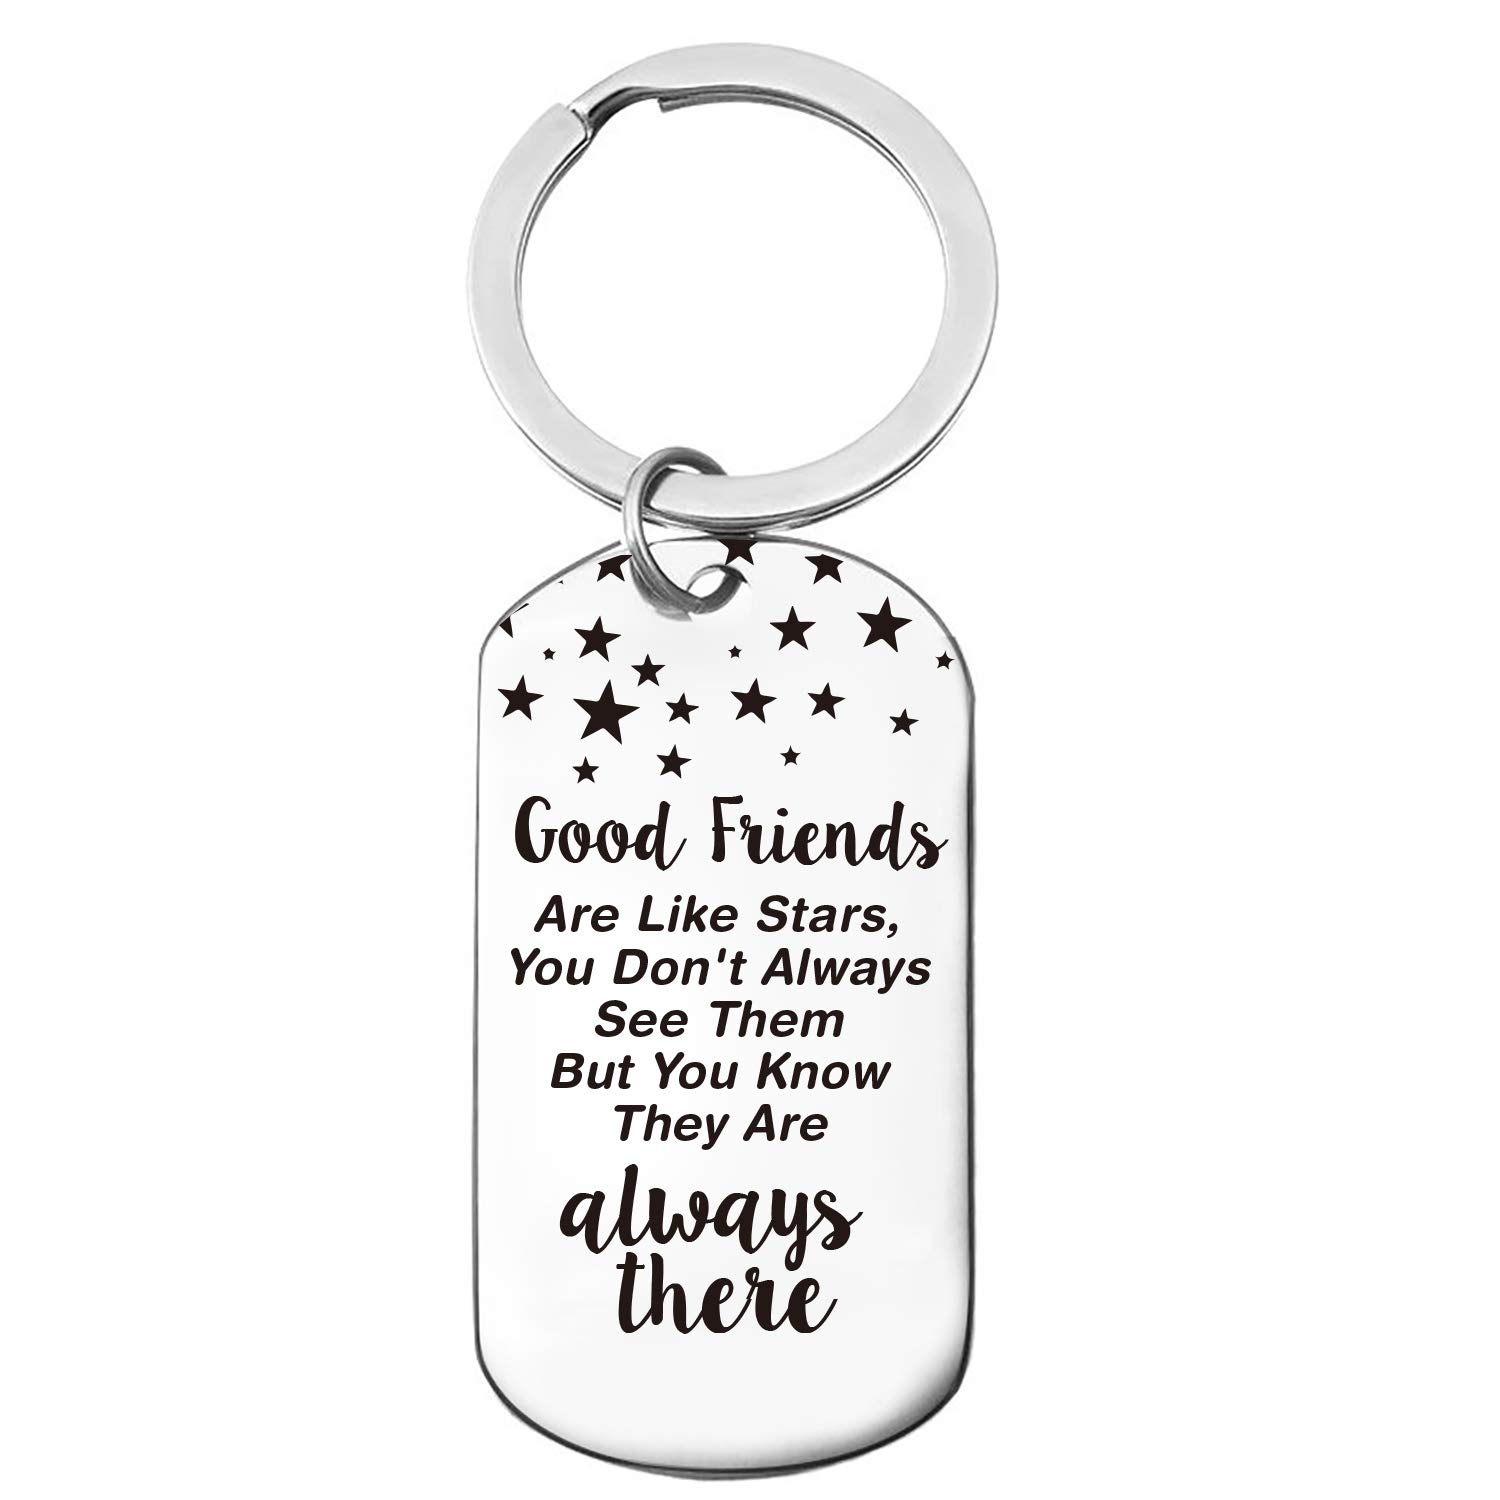 Inspirational Motivational Friendship Quotes Stainless Steel Key Chain  Ring, Best Friends Keychain Gift, Friendship Gift for Friends